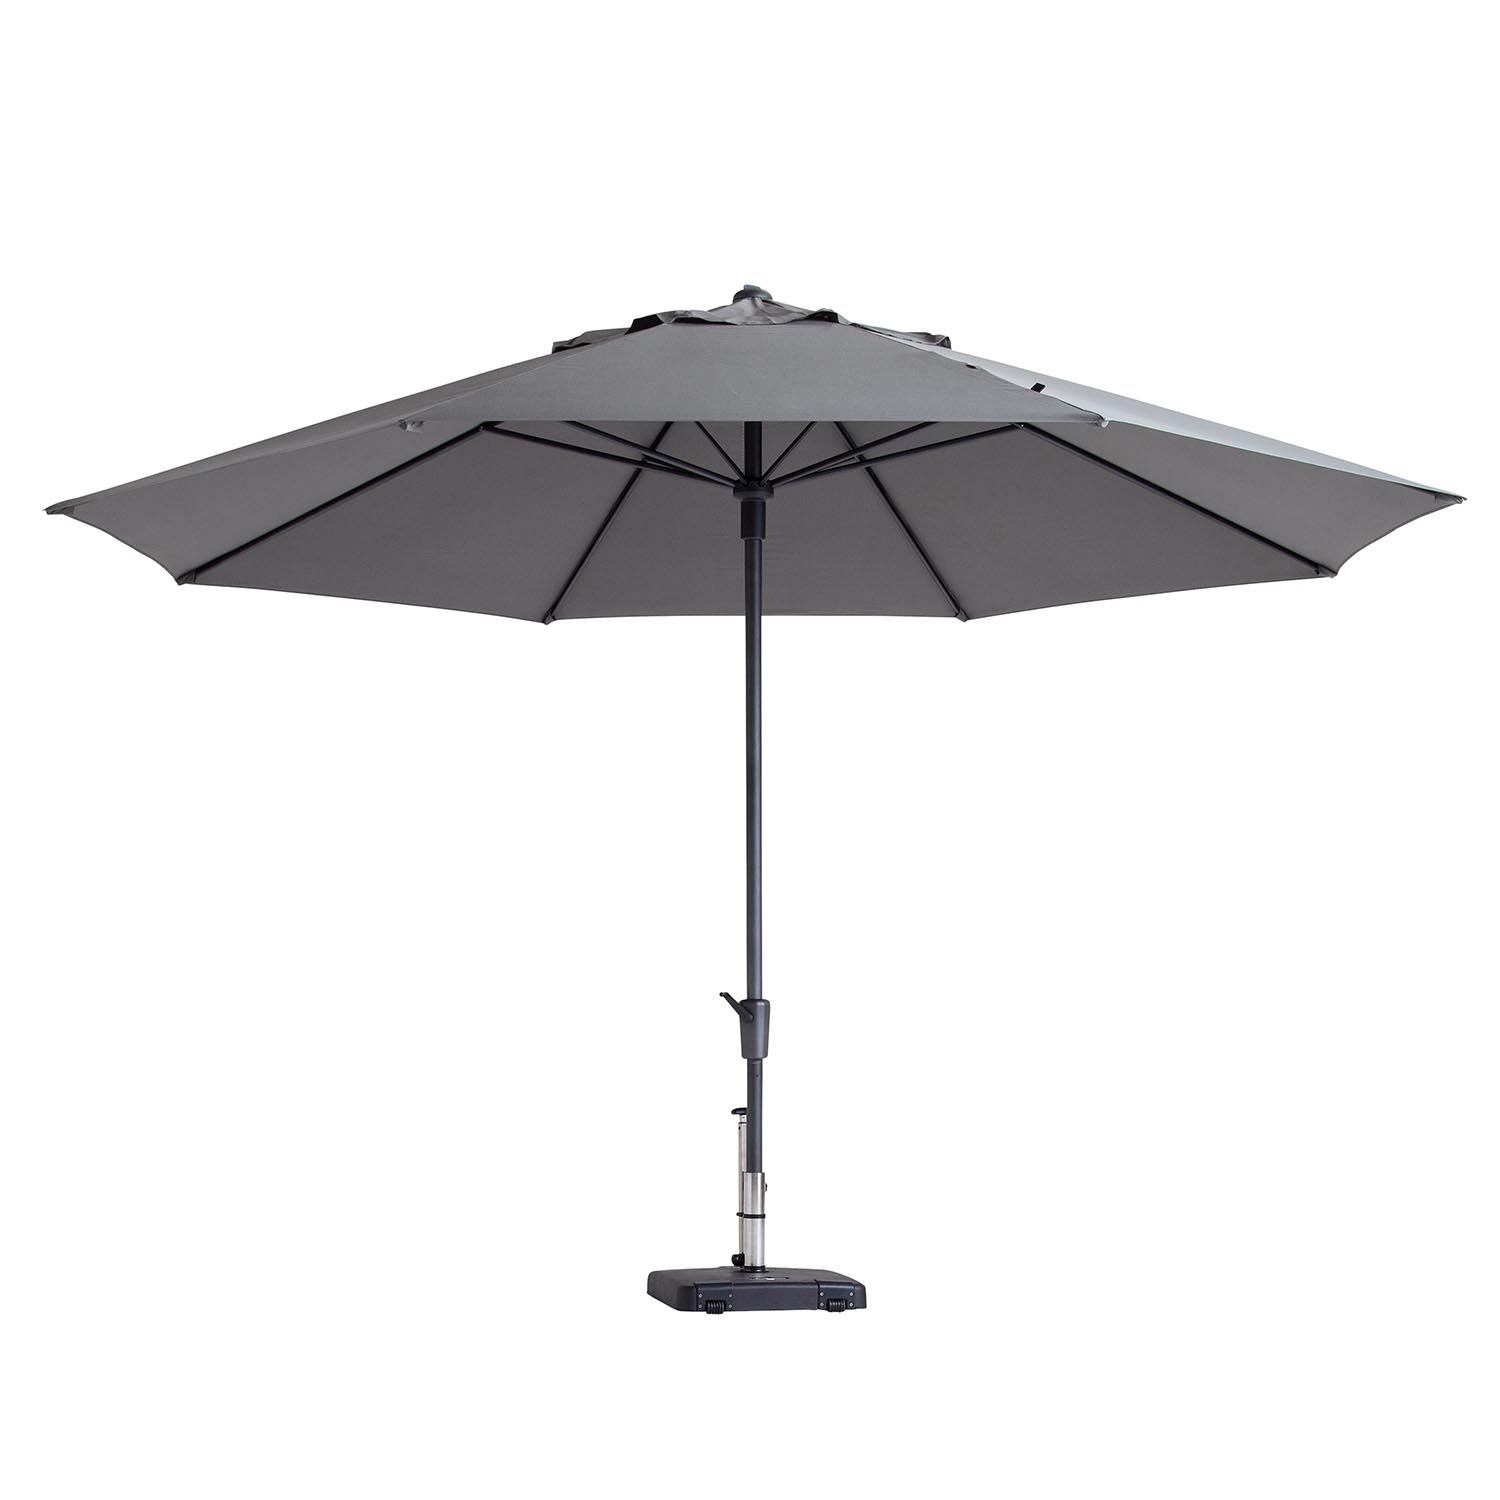 Parasol Timor 400cm (Light grey)